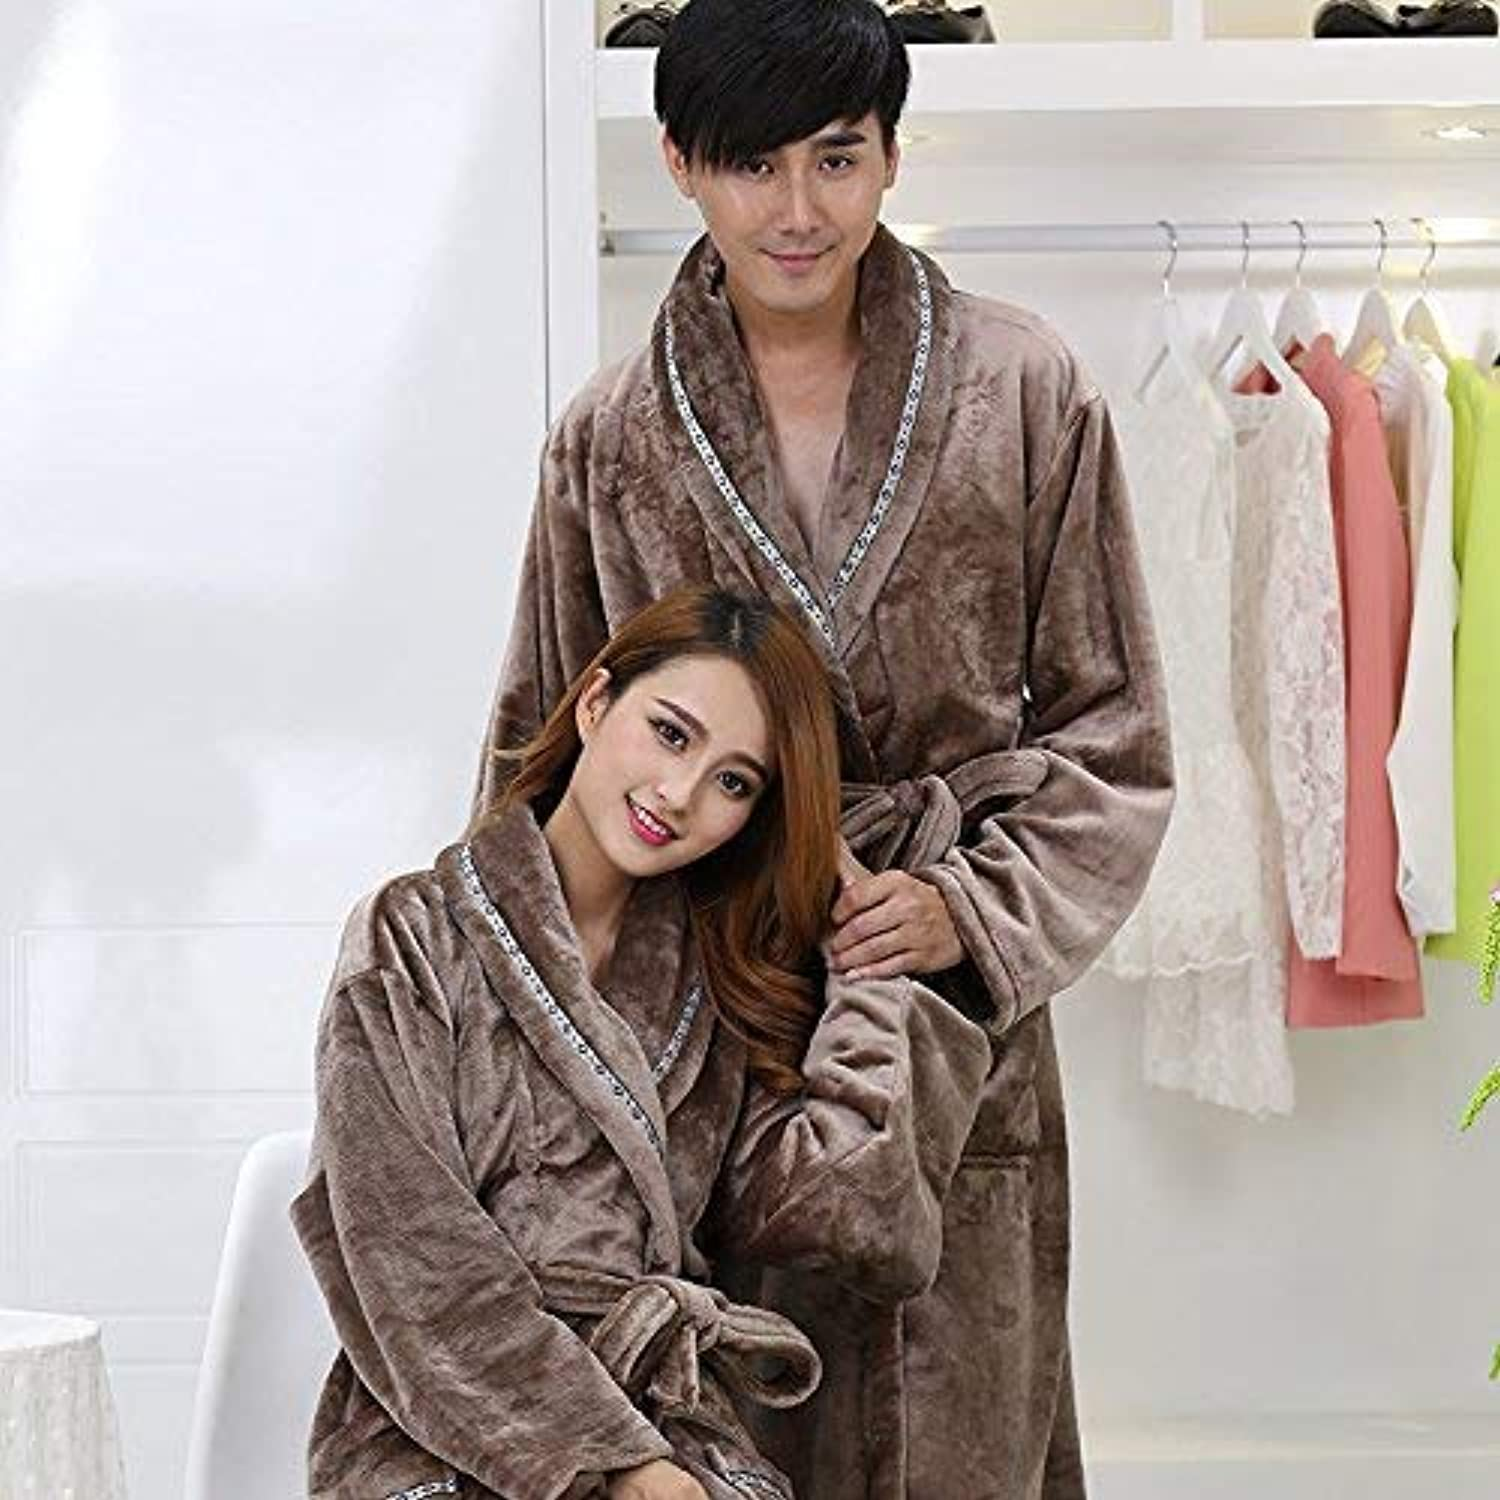 DALAI Autumn and Winter Models Warm Couple Flannel Robe Bathrobe Men and Women Bathrobes Conjoined Couple Coral Fleece Pajamas (color   Grey, Size   M) (color   Grey, Size   Medium)